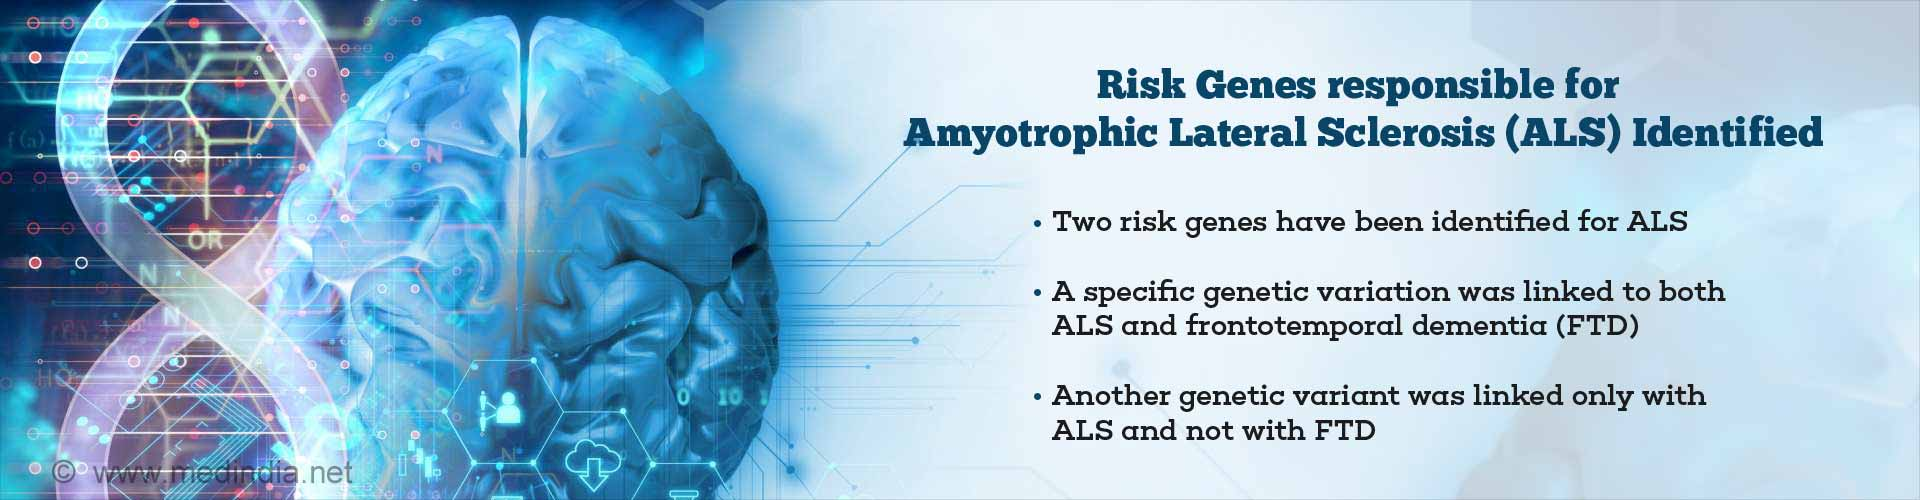 Two Risk Genes for Amyotrophic Lateral Sclerosis Identified